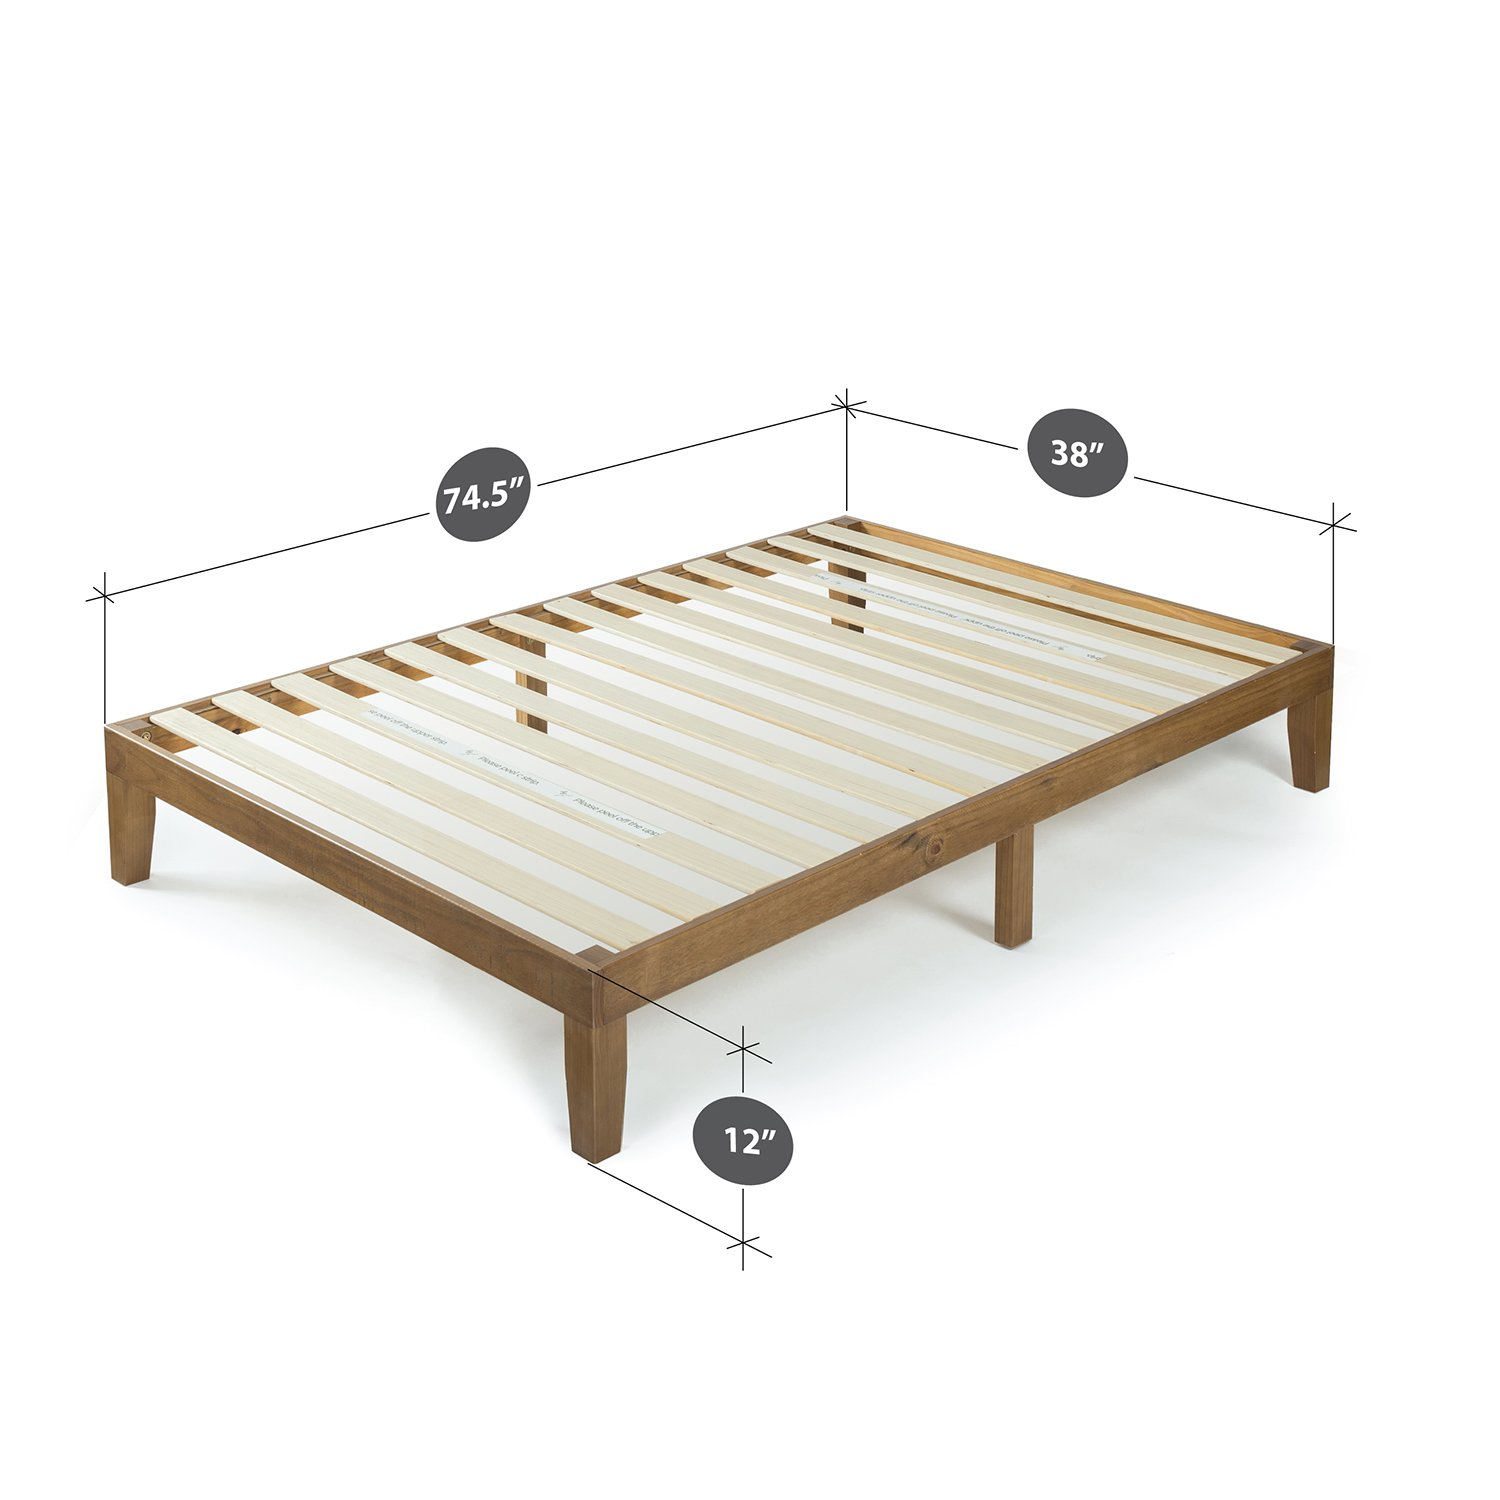 Zinus 12 Inch Wood Platform Bed / No Boxspring Needed / Wood Slat Support / Rustic Pine Finish, Twin by Zinus (Image #2)